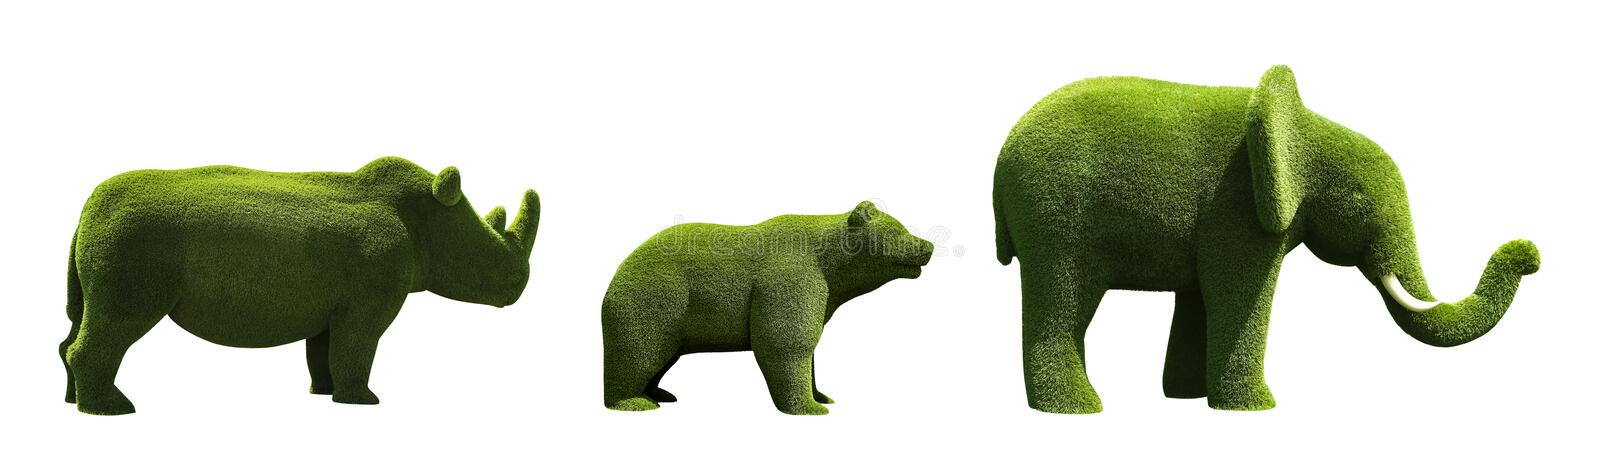 Beautiful elephant, bear and rhinoceros shaped topiaries isolated. Landscape gardening. Beautiful elephant, bear and rhinoceros shaped topiaries isolated on royalty free stock images